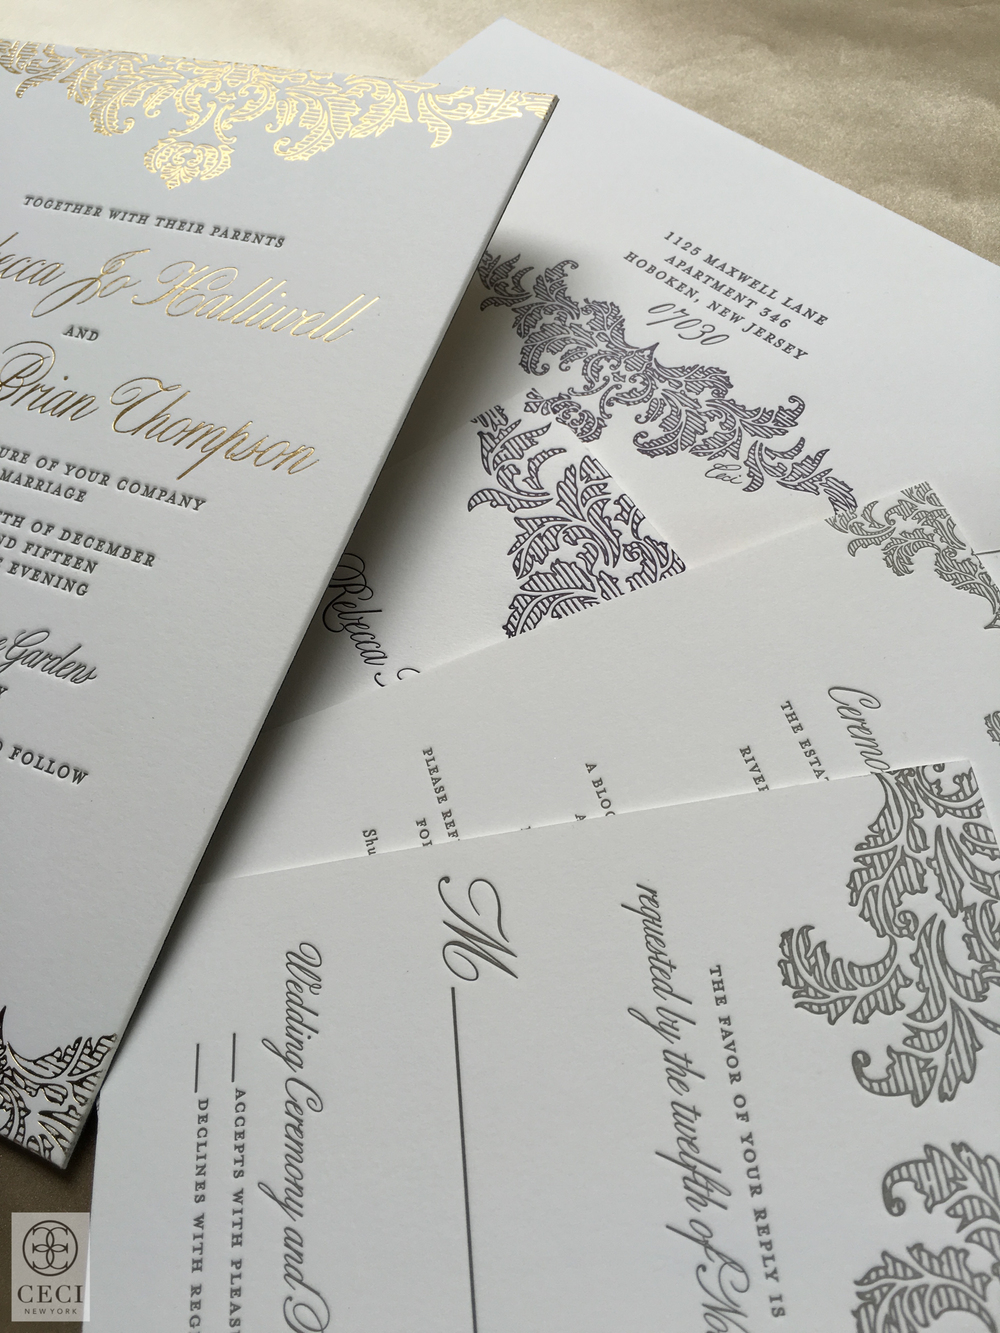 Ceci_New_York_New_Jersey_Invitations_Wedding_New_York_Elegance_Silver_Blue_Letterpress_Deco_Classic_Foil_Stamping_Custom_Couture_Personalized-21.jpg